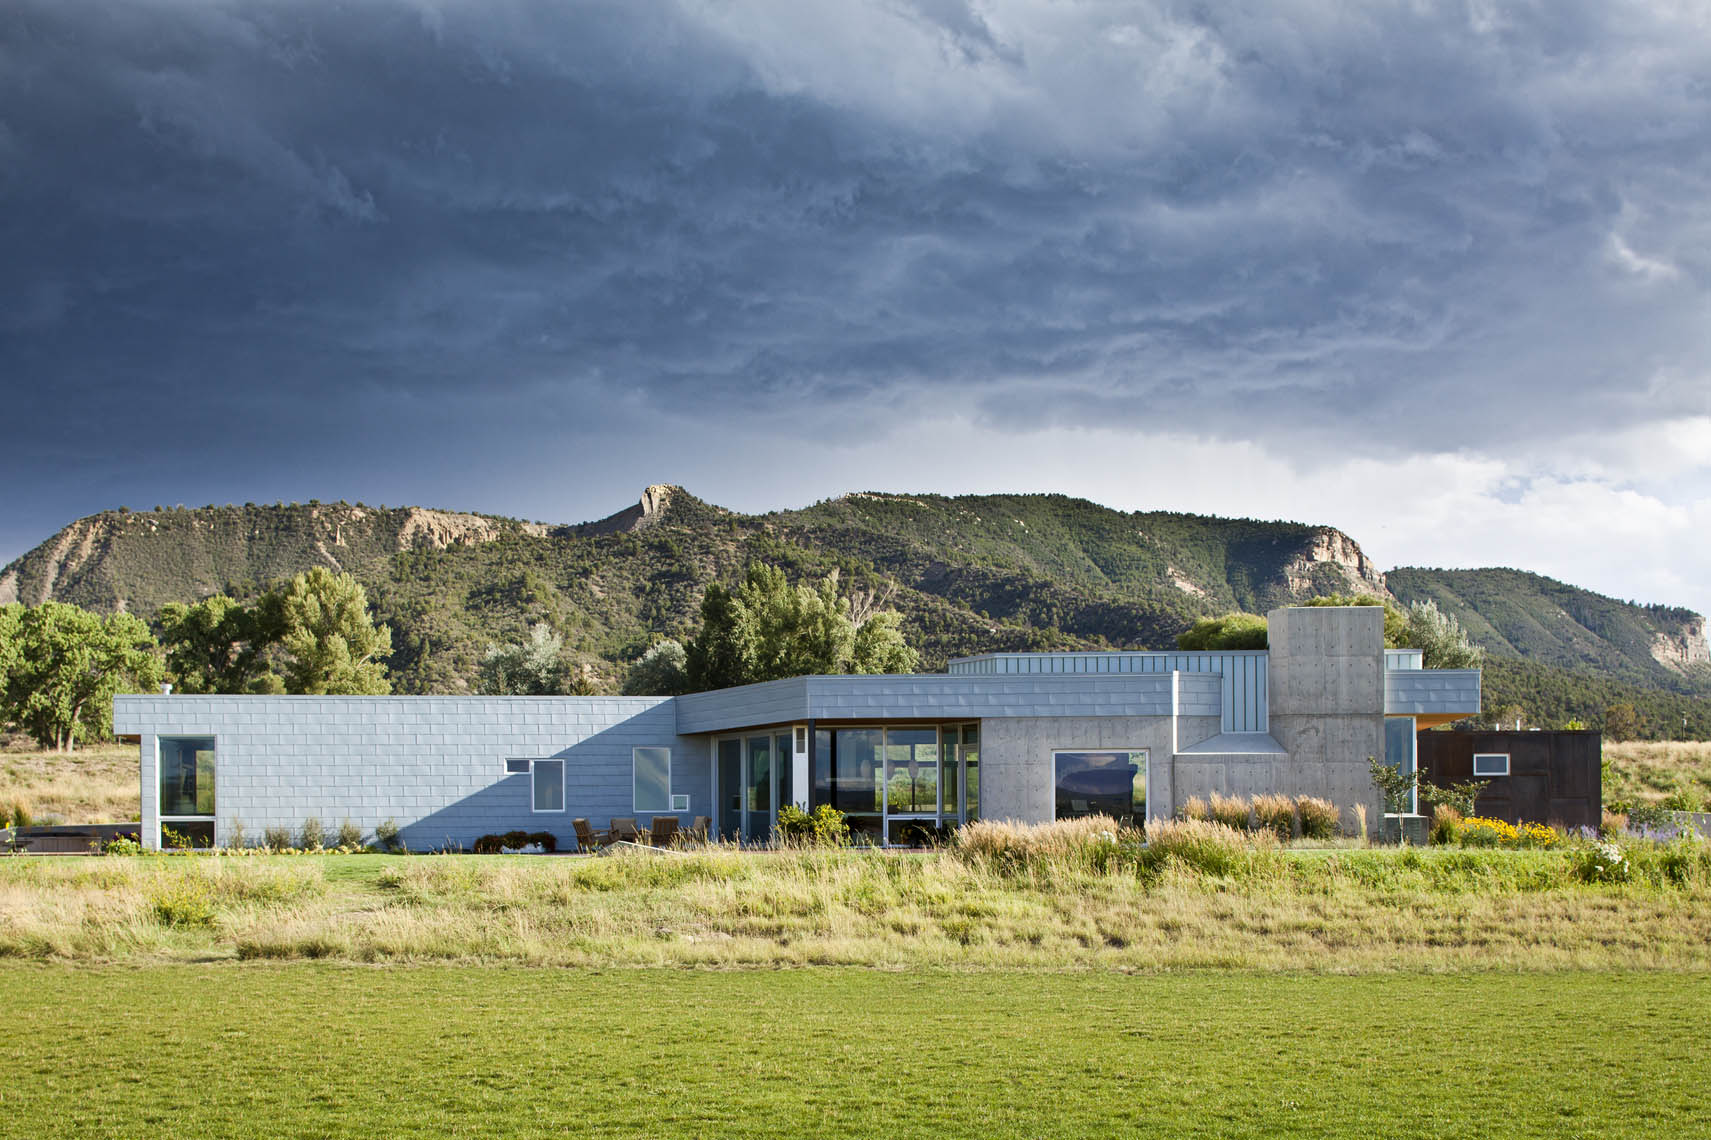 Contemporary residential architecture, Mancos